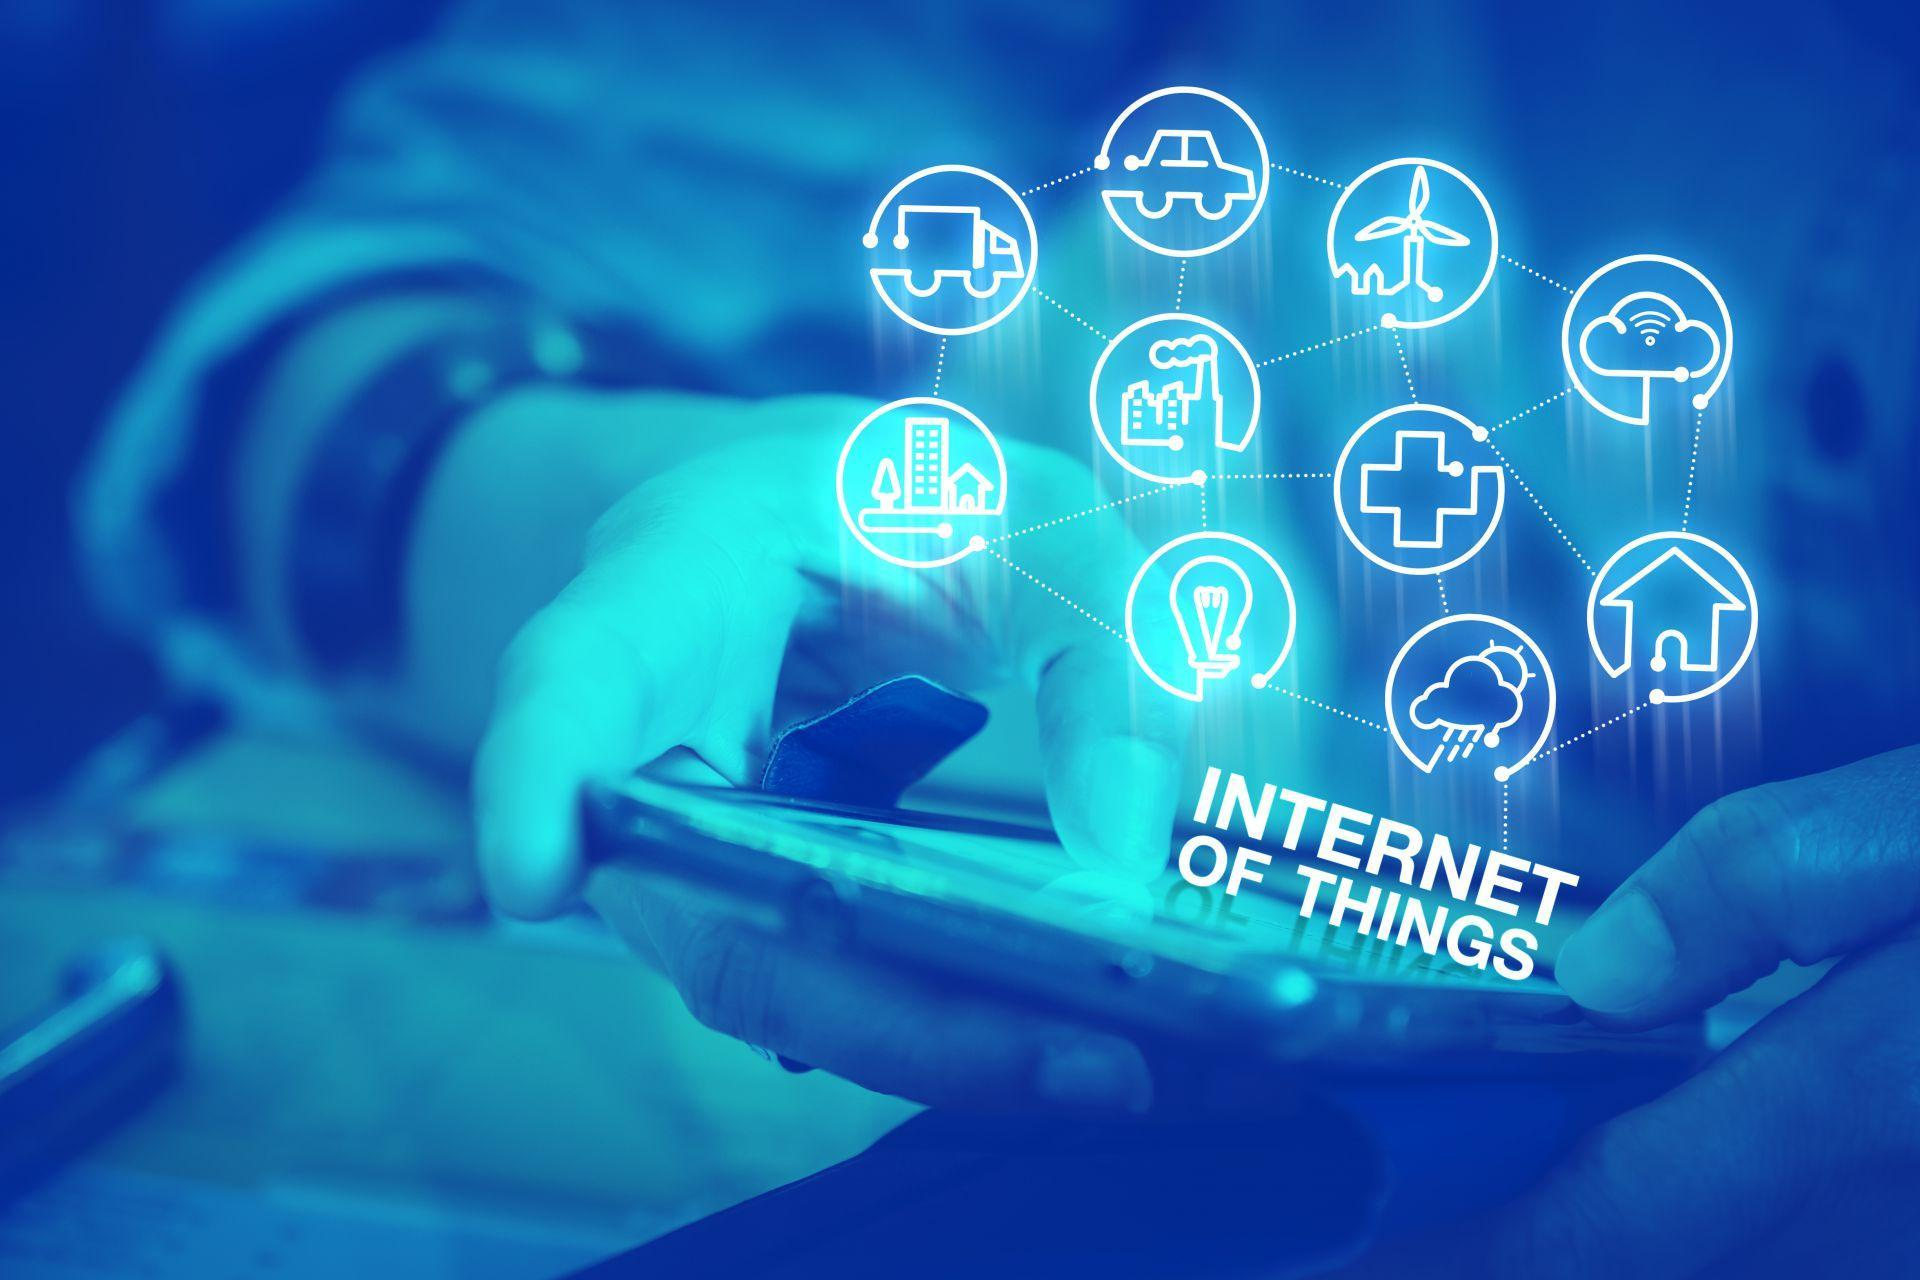 Dutch Government Investigate Security of Internet of Things